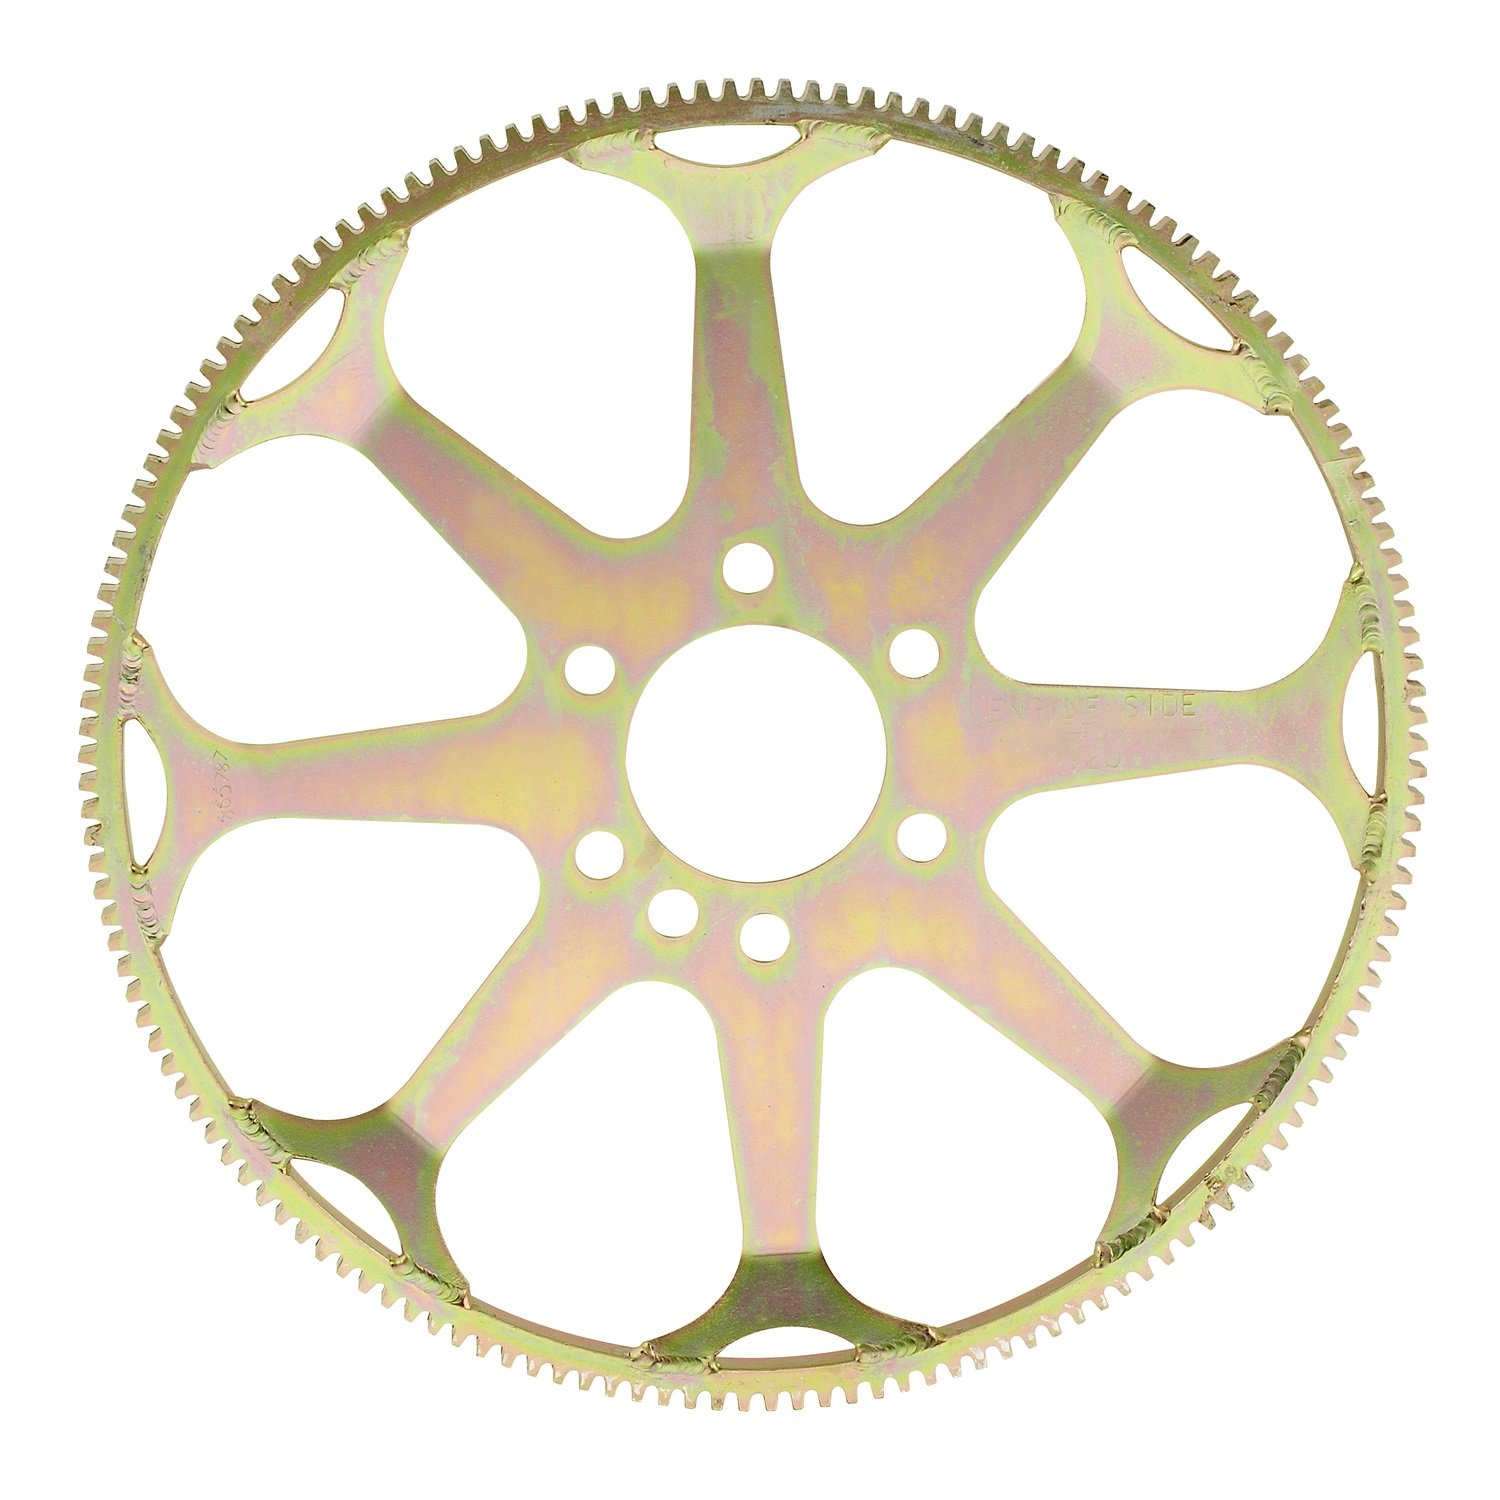 QuickTime (RM-920) Ultralight Flexplate for Chevrolet Small Block Engine